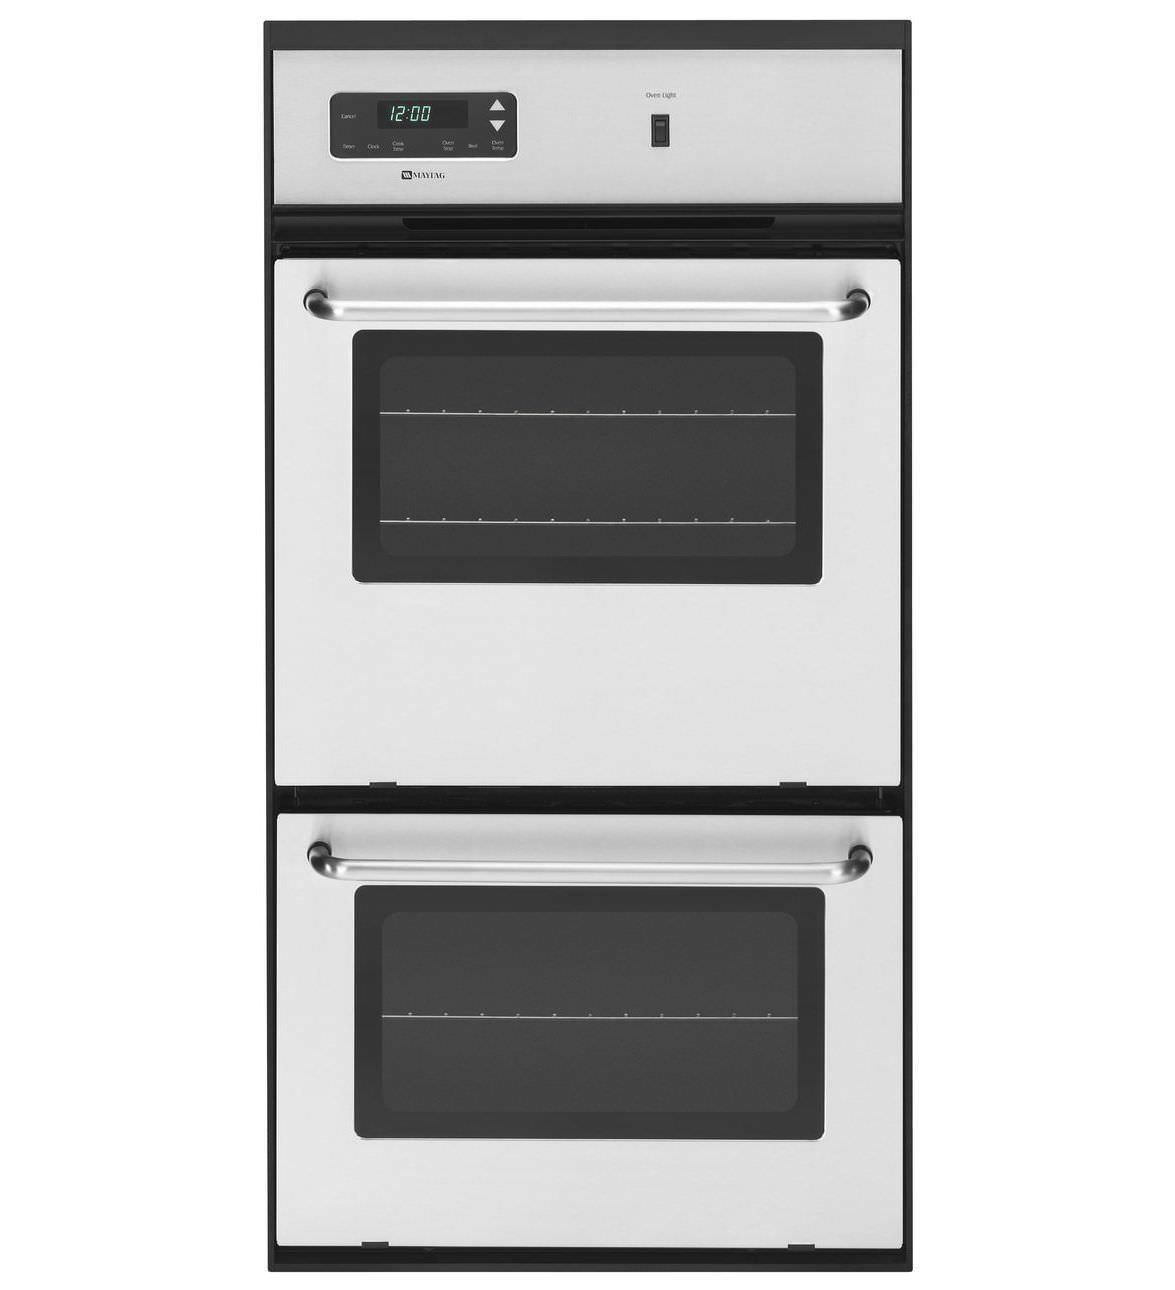 Gas Oven Cwg3600aas Maytag Built In 2 Chamber